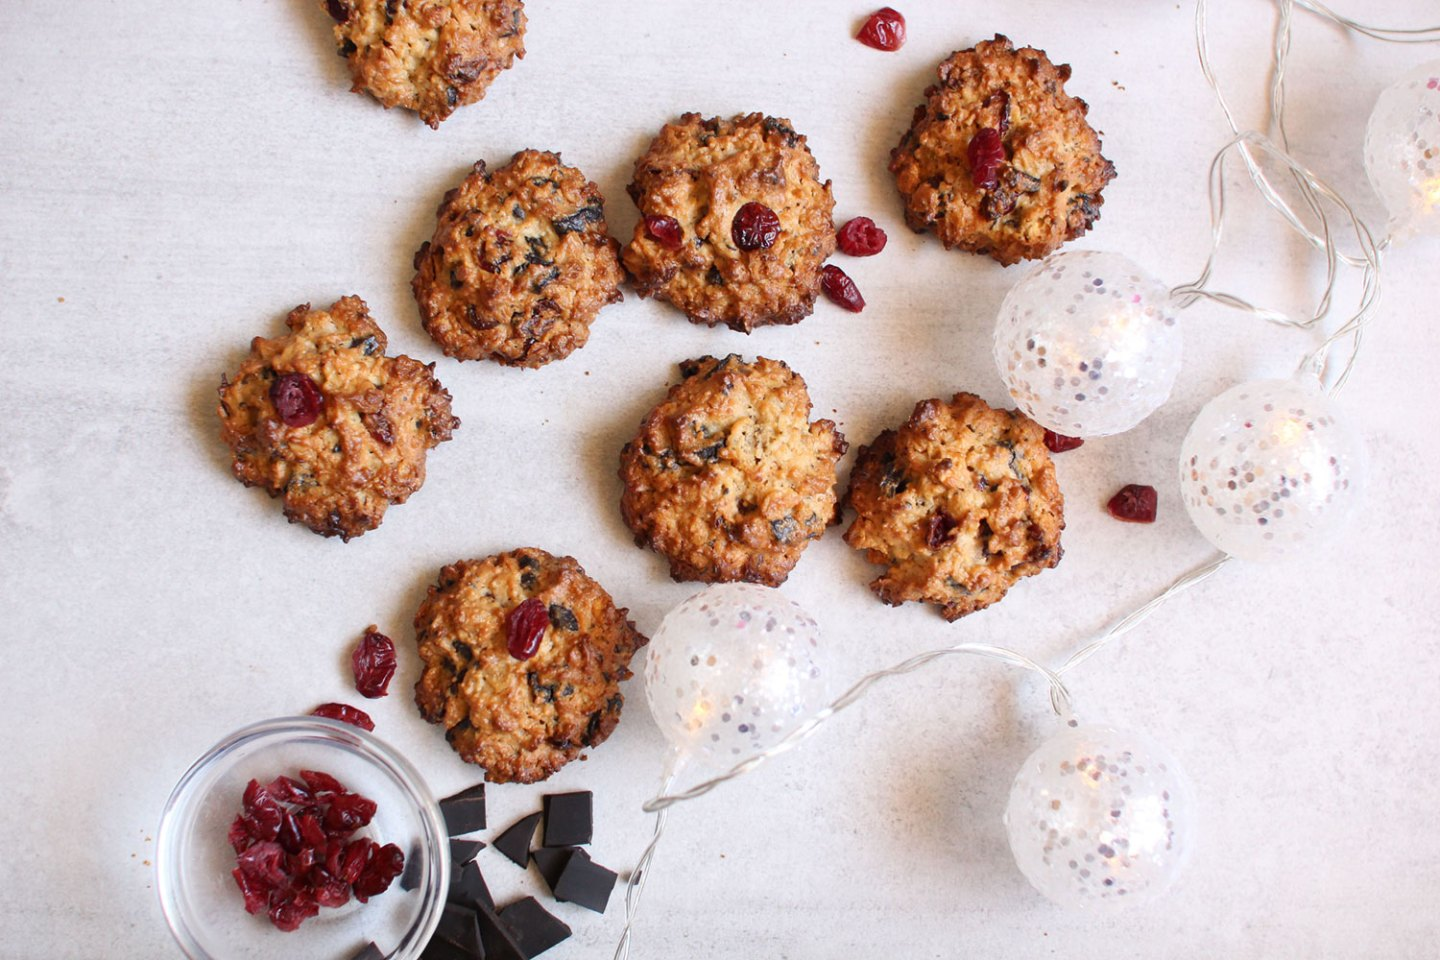 Chocolate, Cranberry & Oat Cluster Cookies (gluten-free, dairy-free, sugar-free)